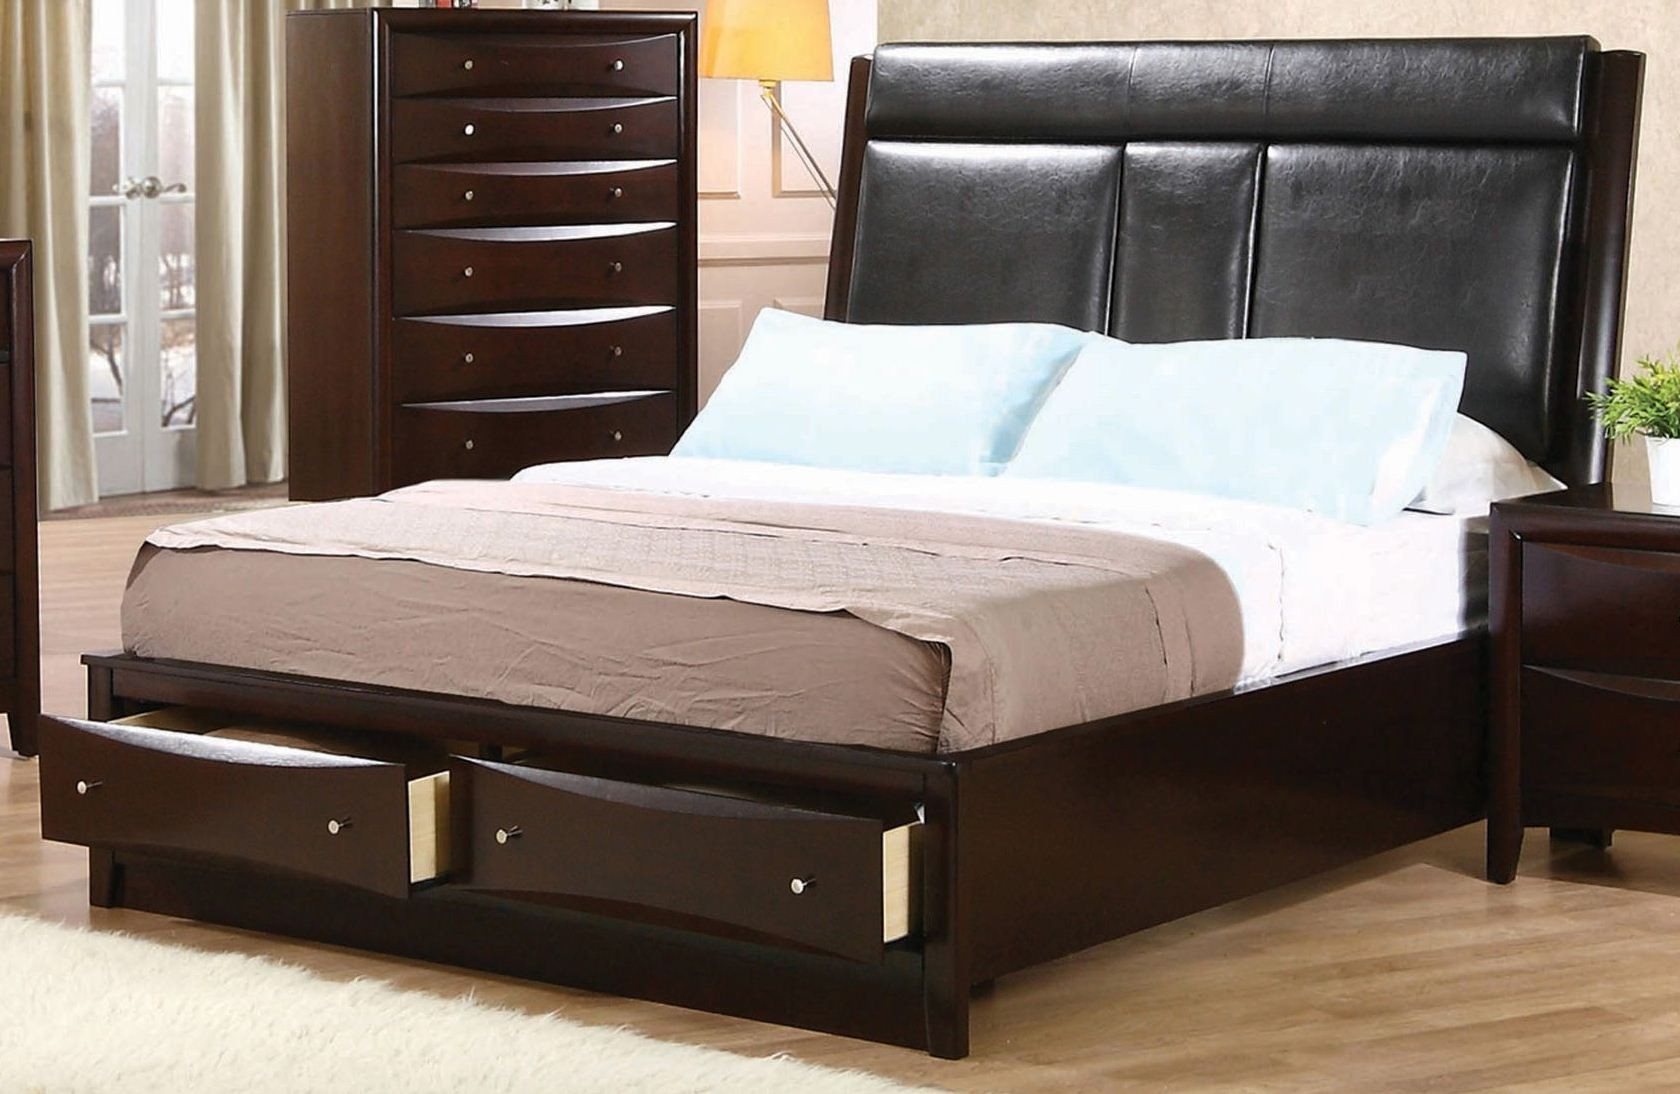 upholstered bedroom set upholstered storage bedroom set from coaster 13697